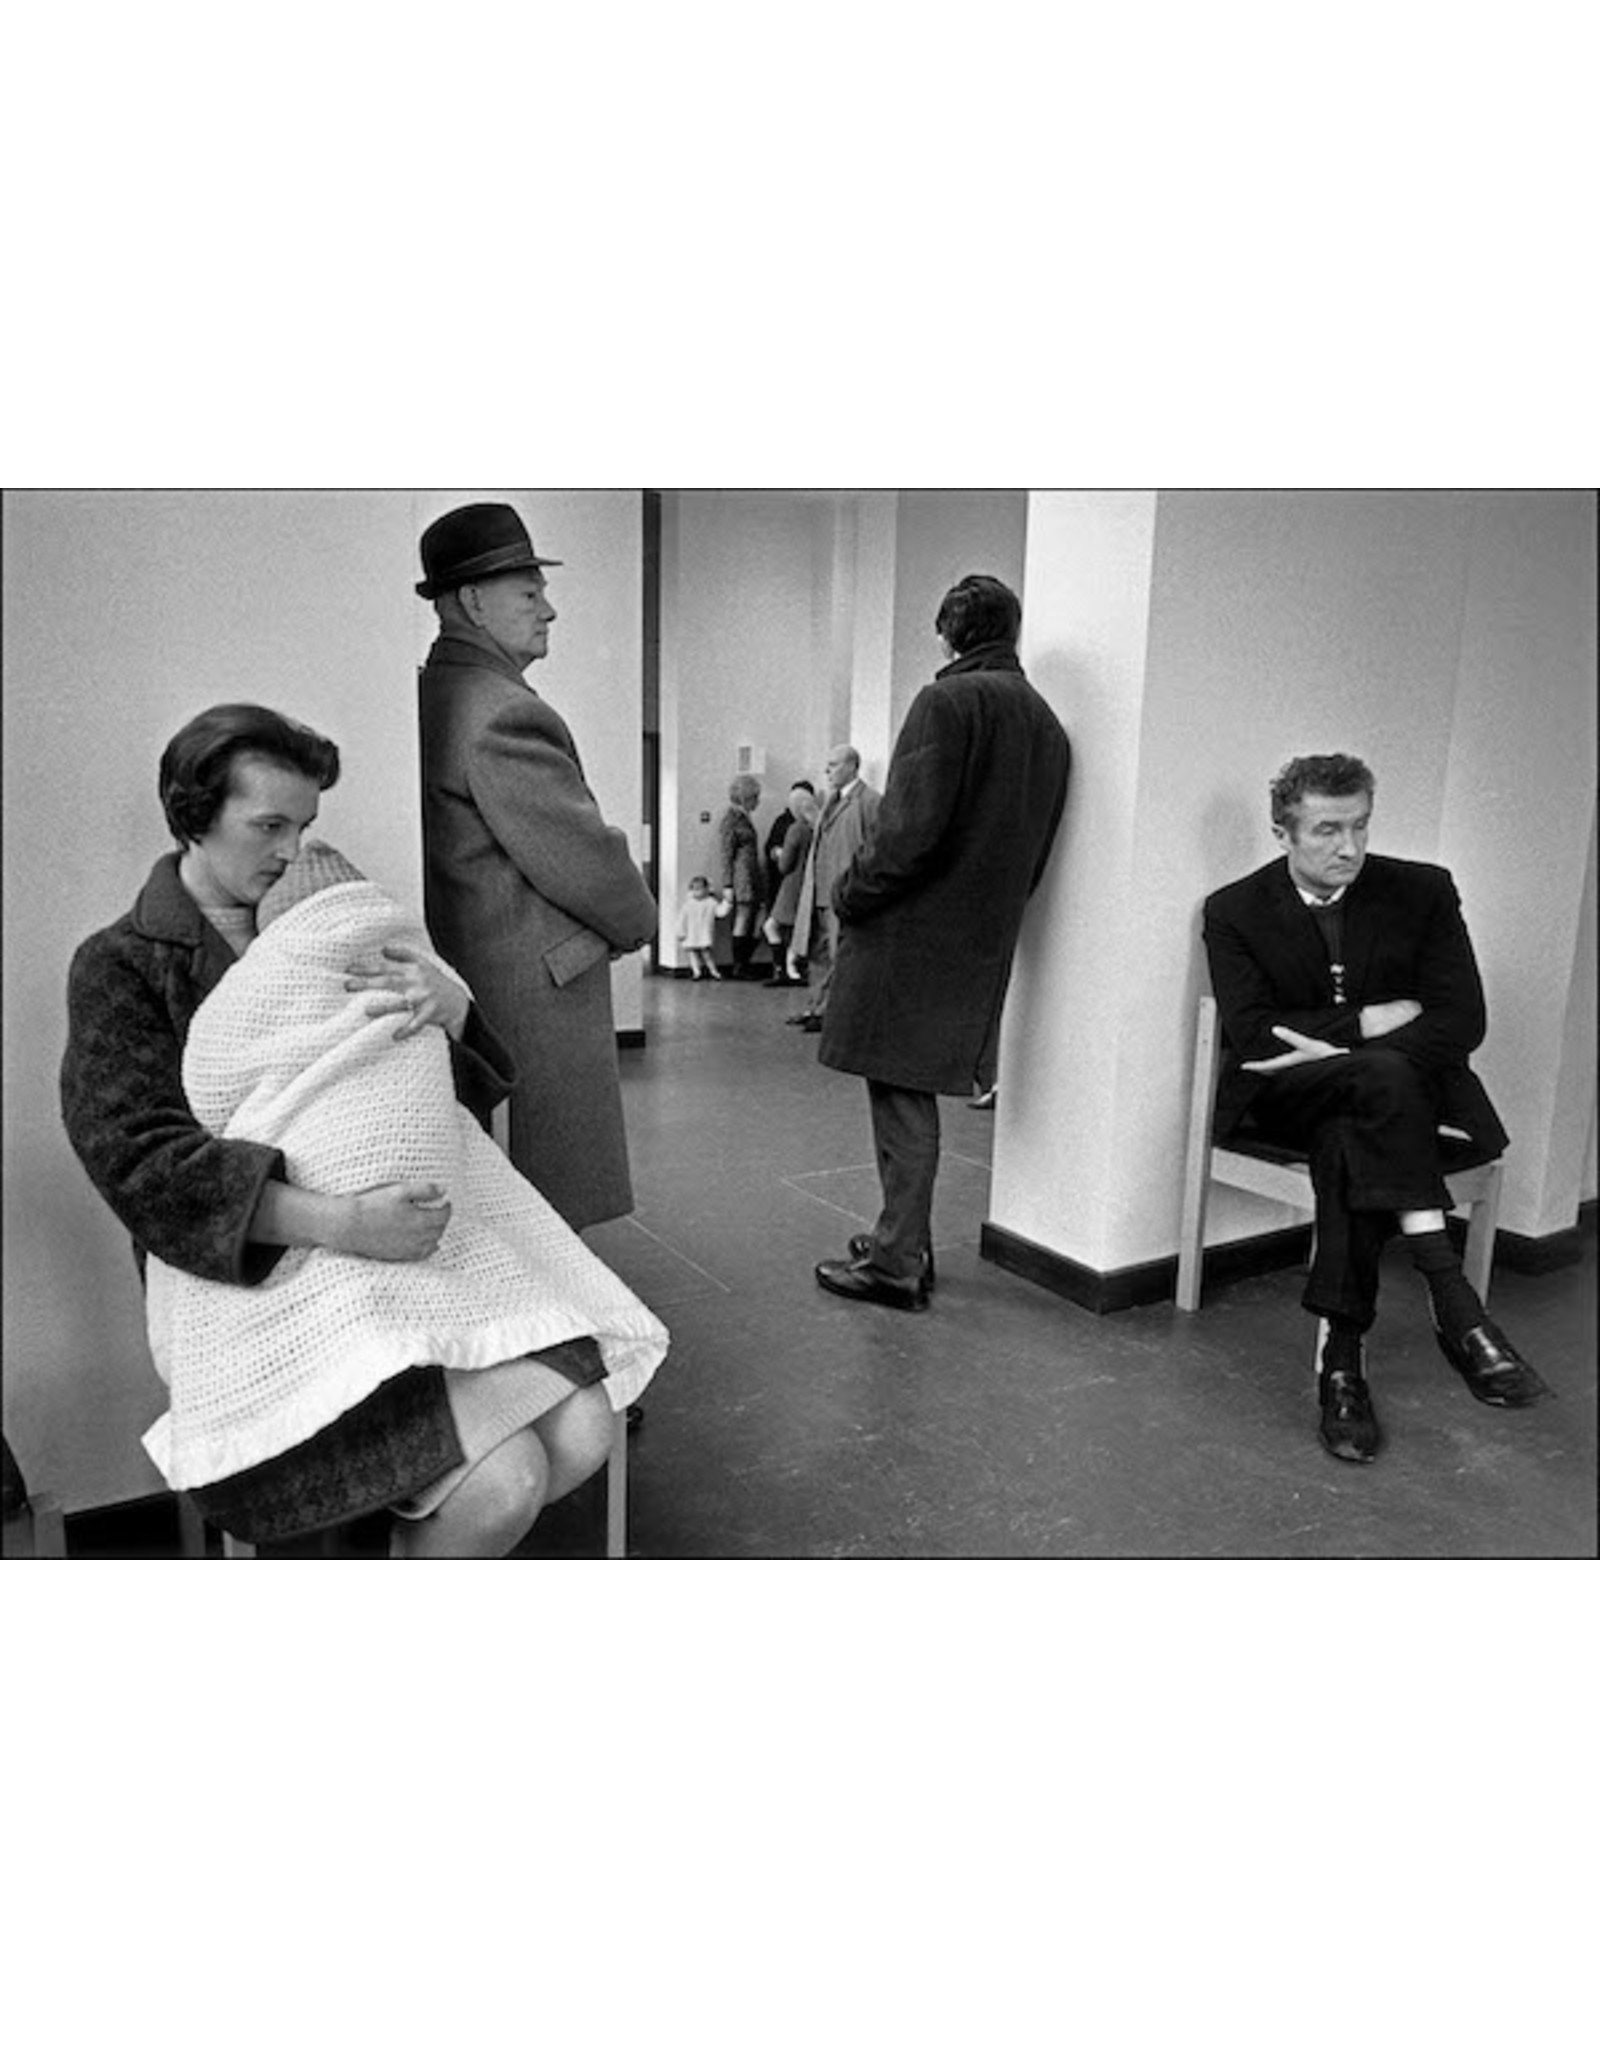 Ian Berry Patients Queueing in a Doctor's Waiting Room, London. Ian Berry (33)